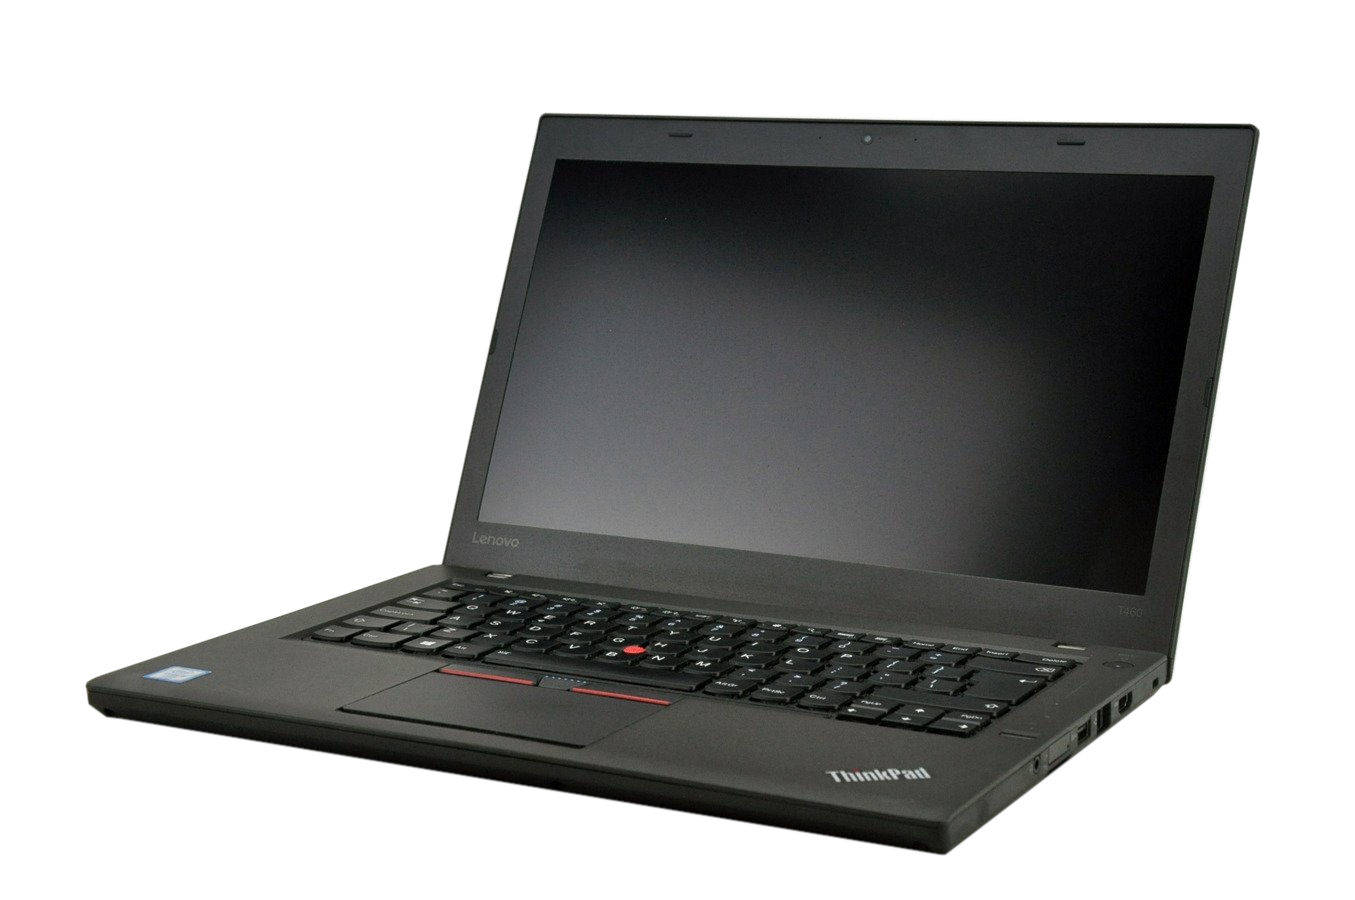 Laptop Lenovo do 2500 zł.